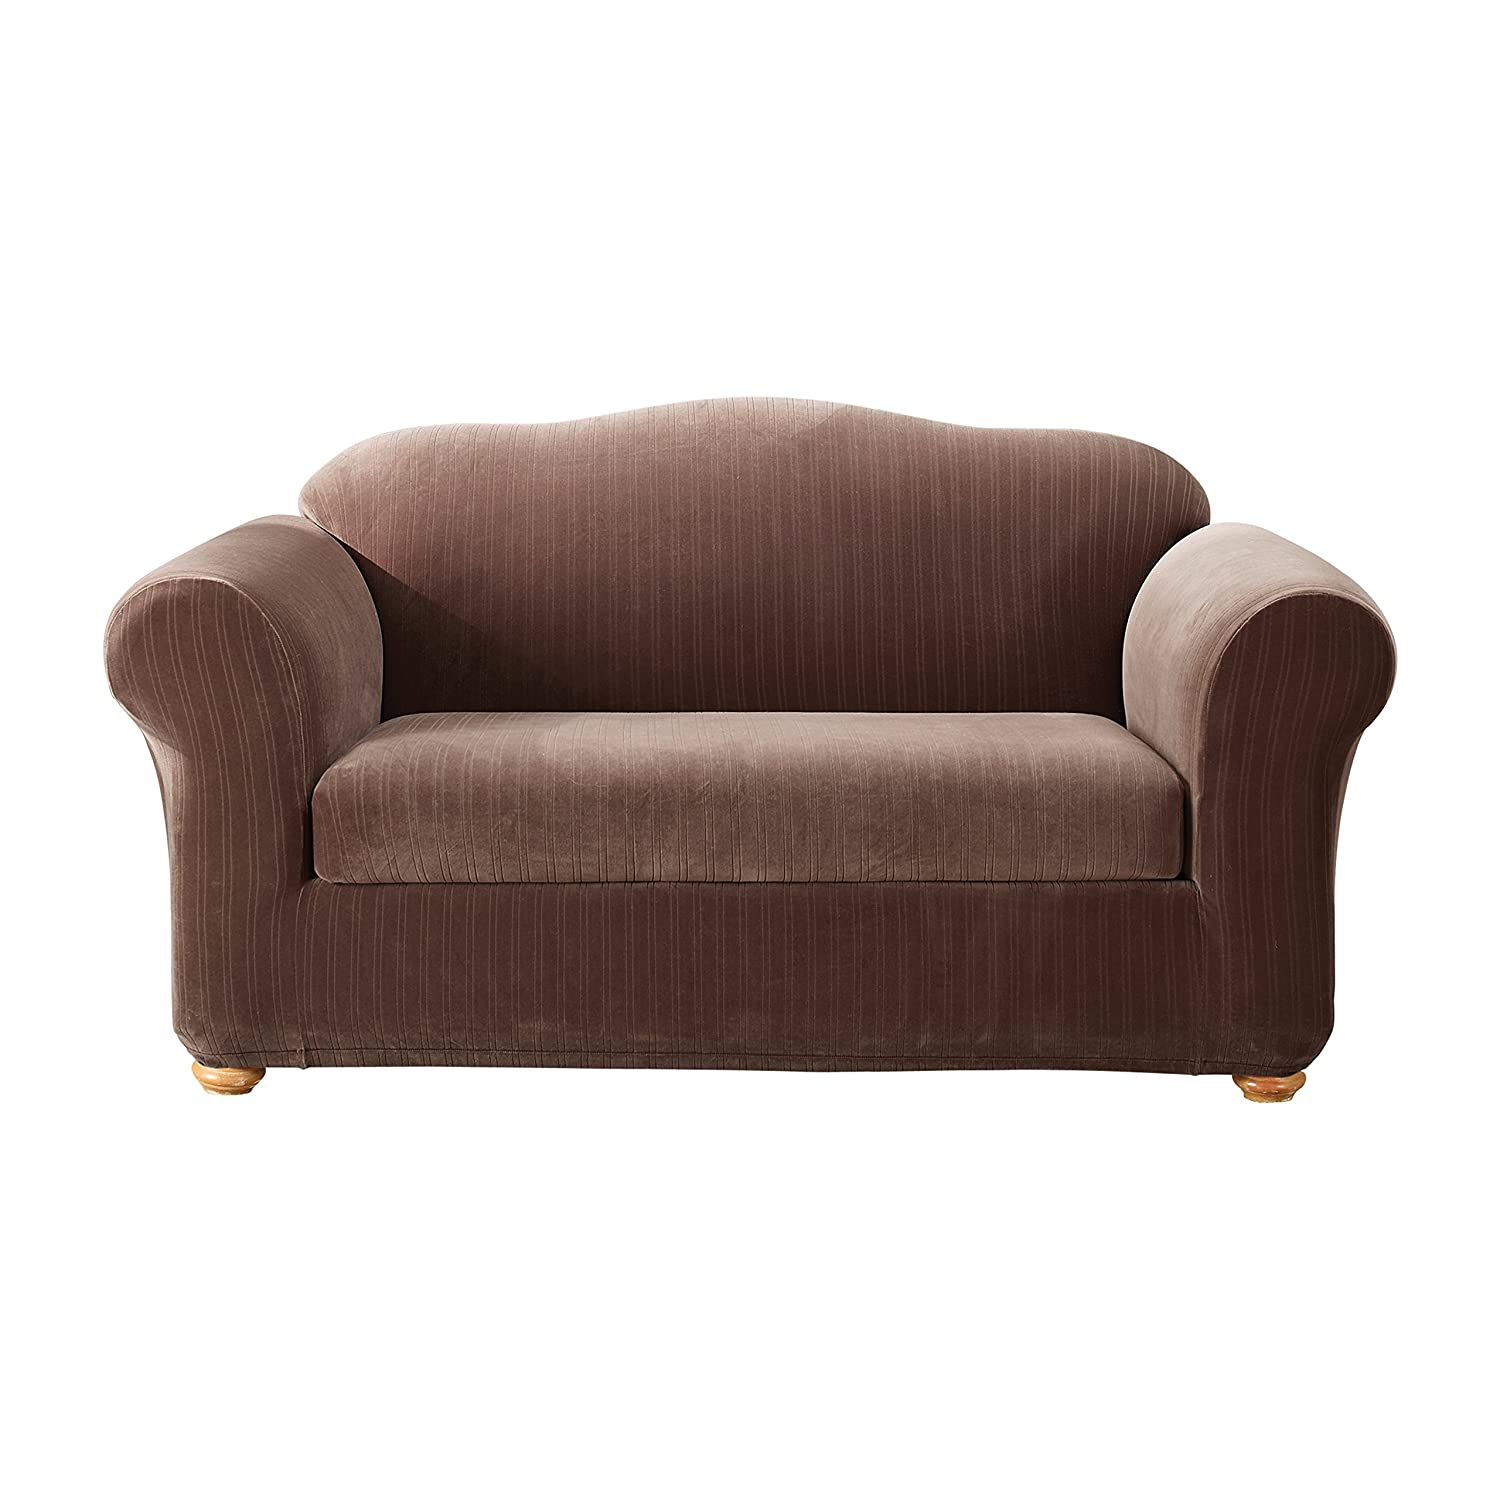 Beautiful fitted couch covers amazon sectional sofas for Fitted furniture slipcovers